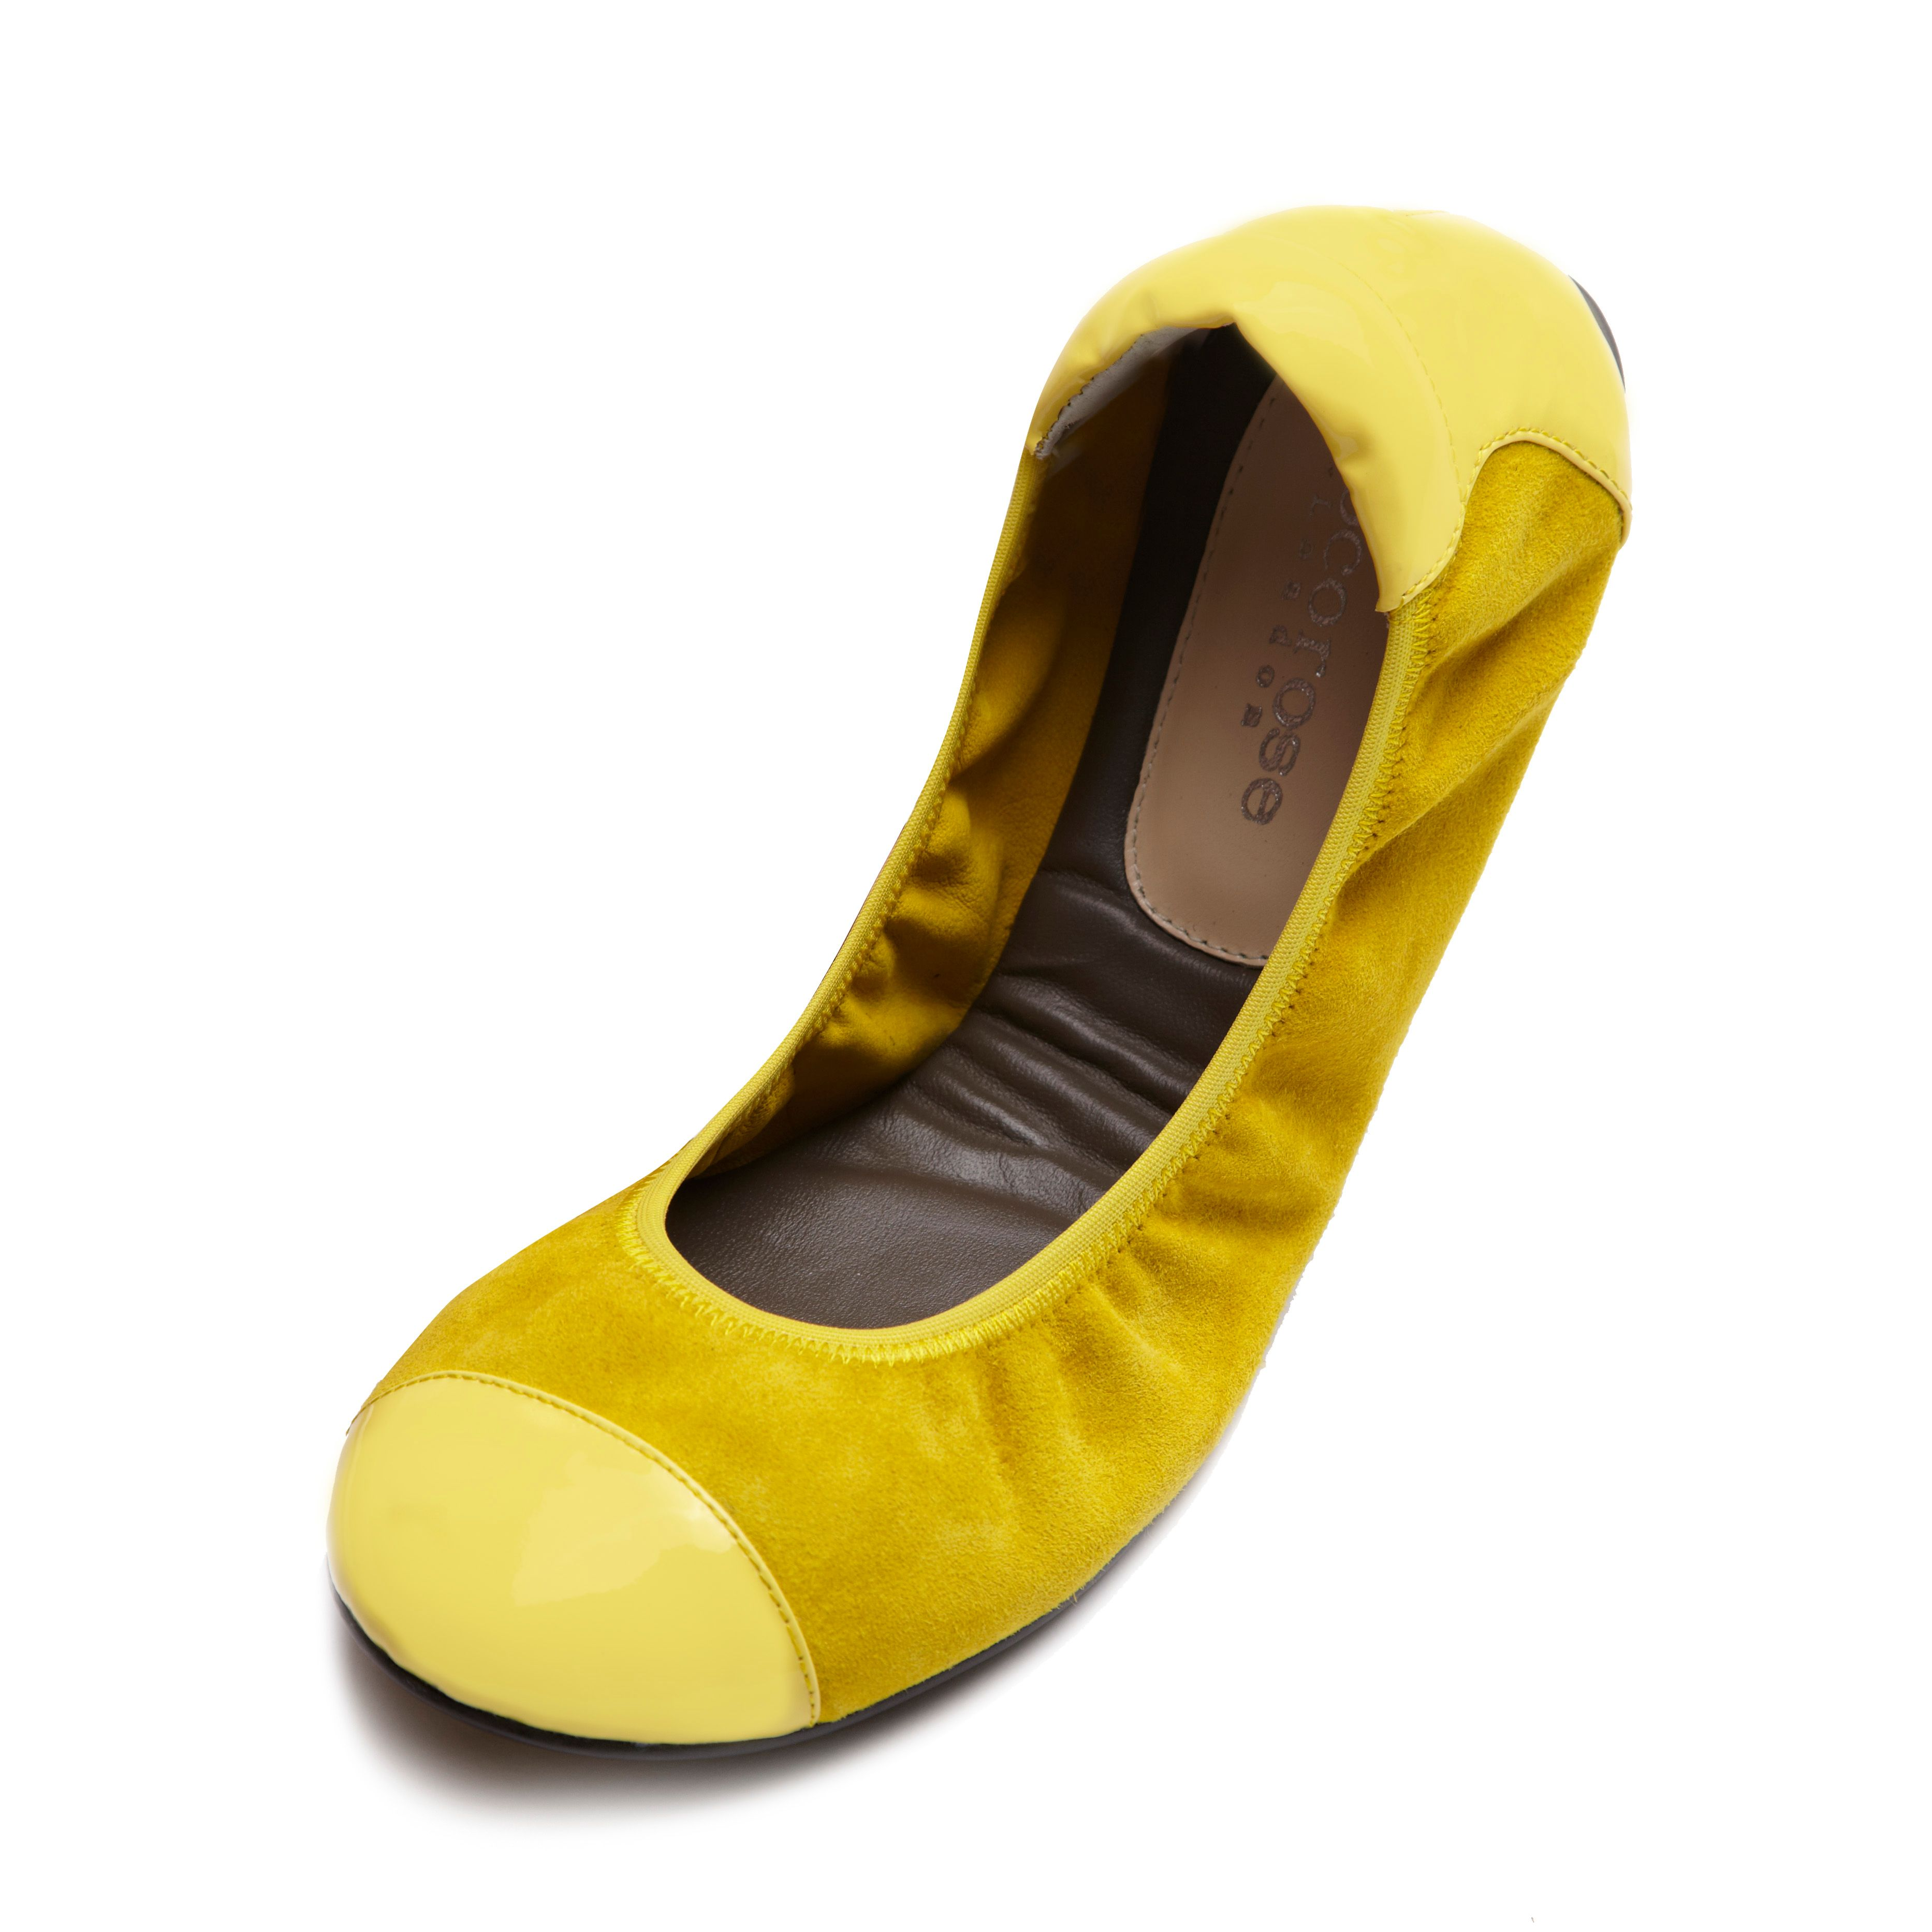 Harrow yellow leather foldable ballerina